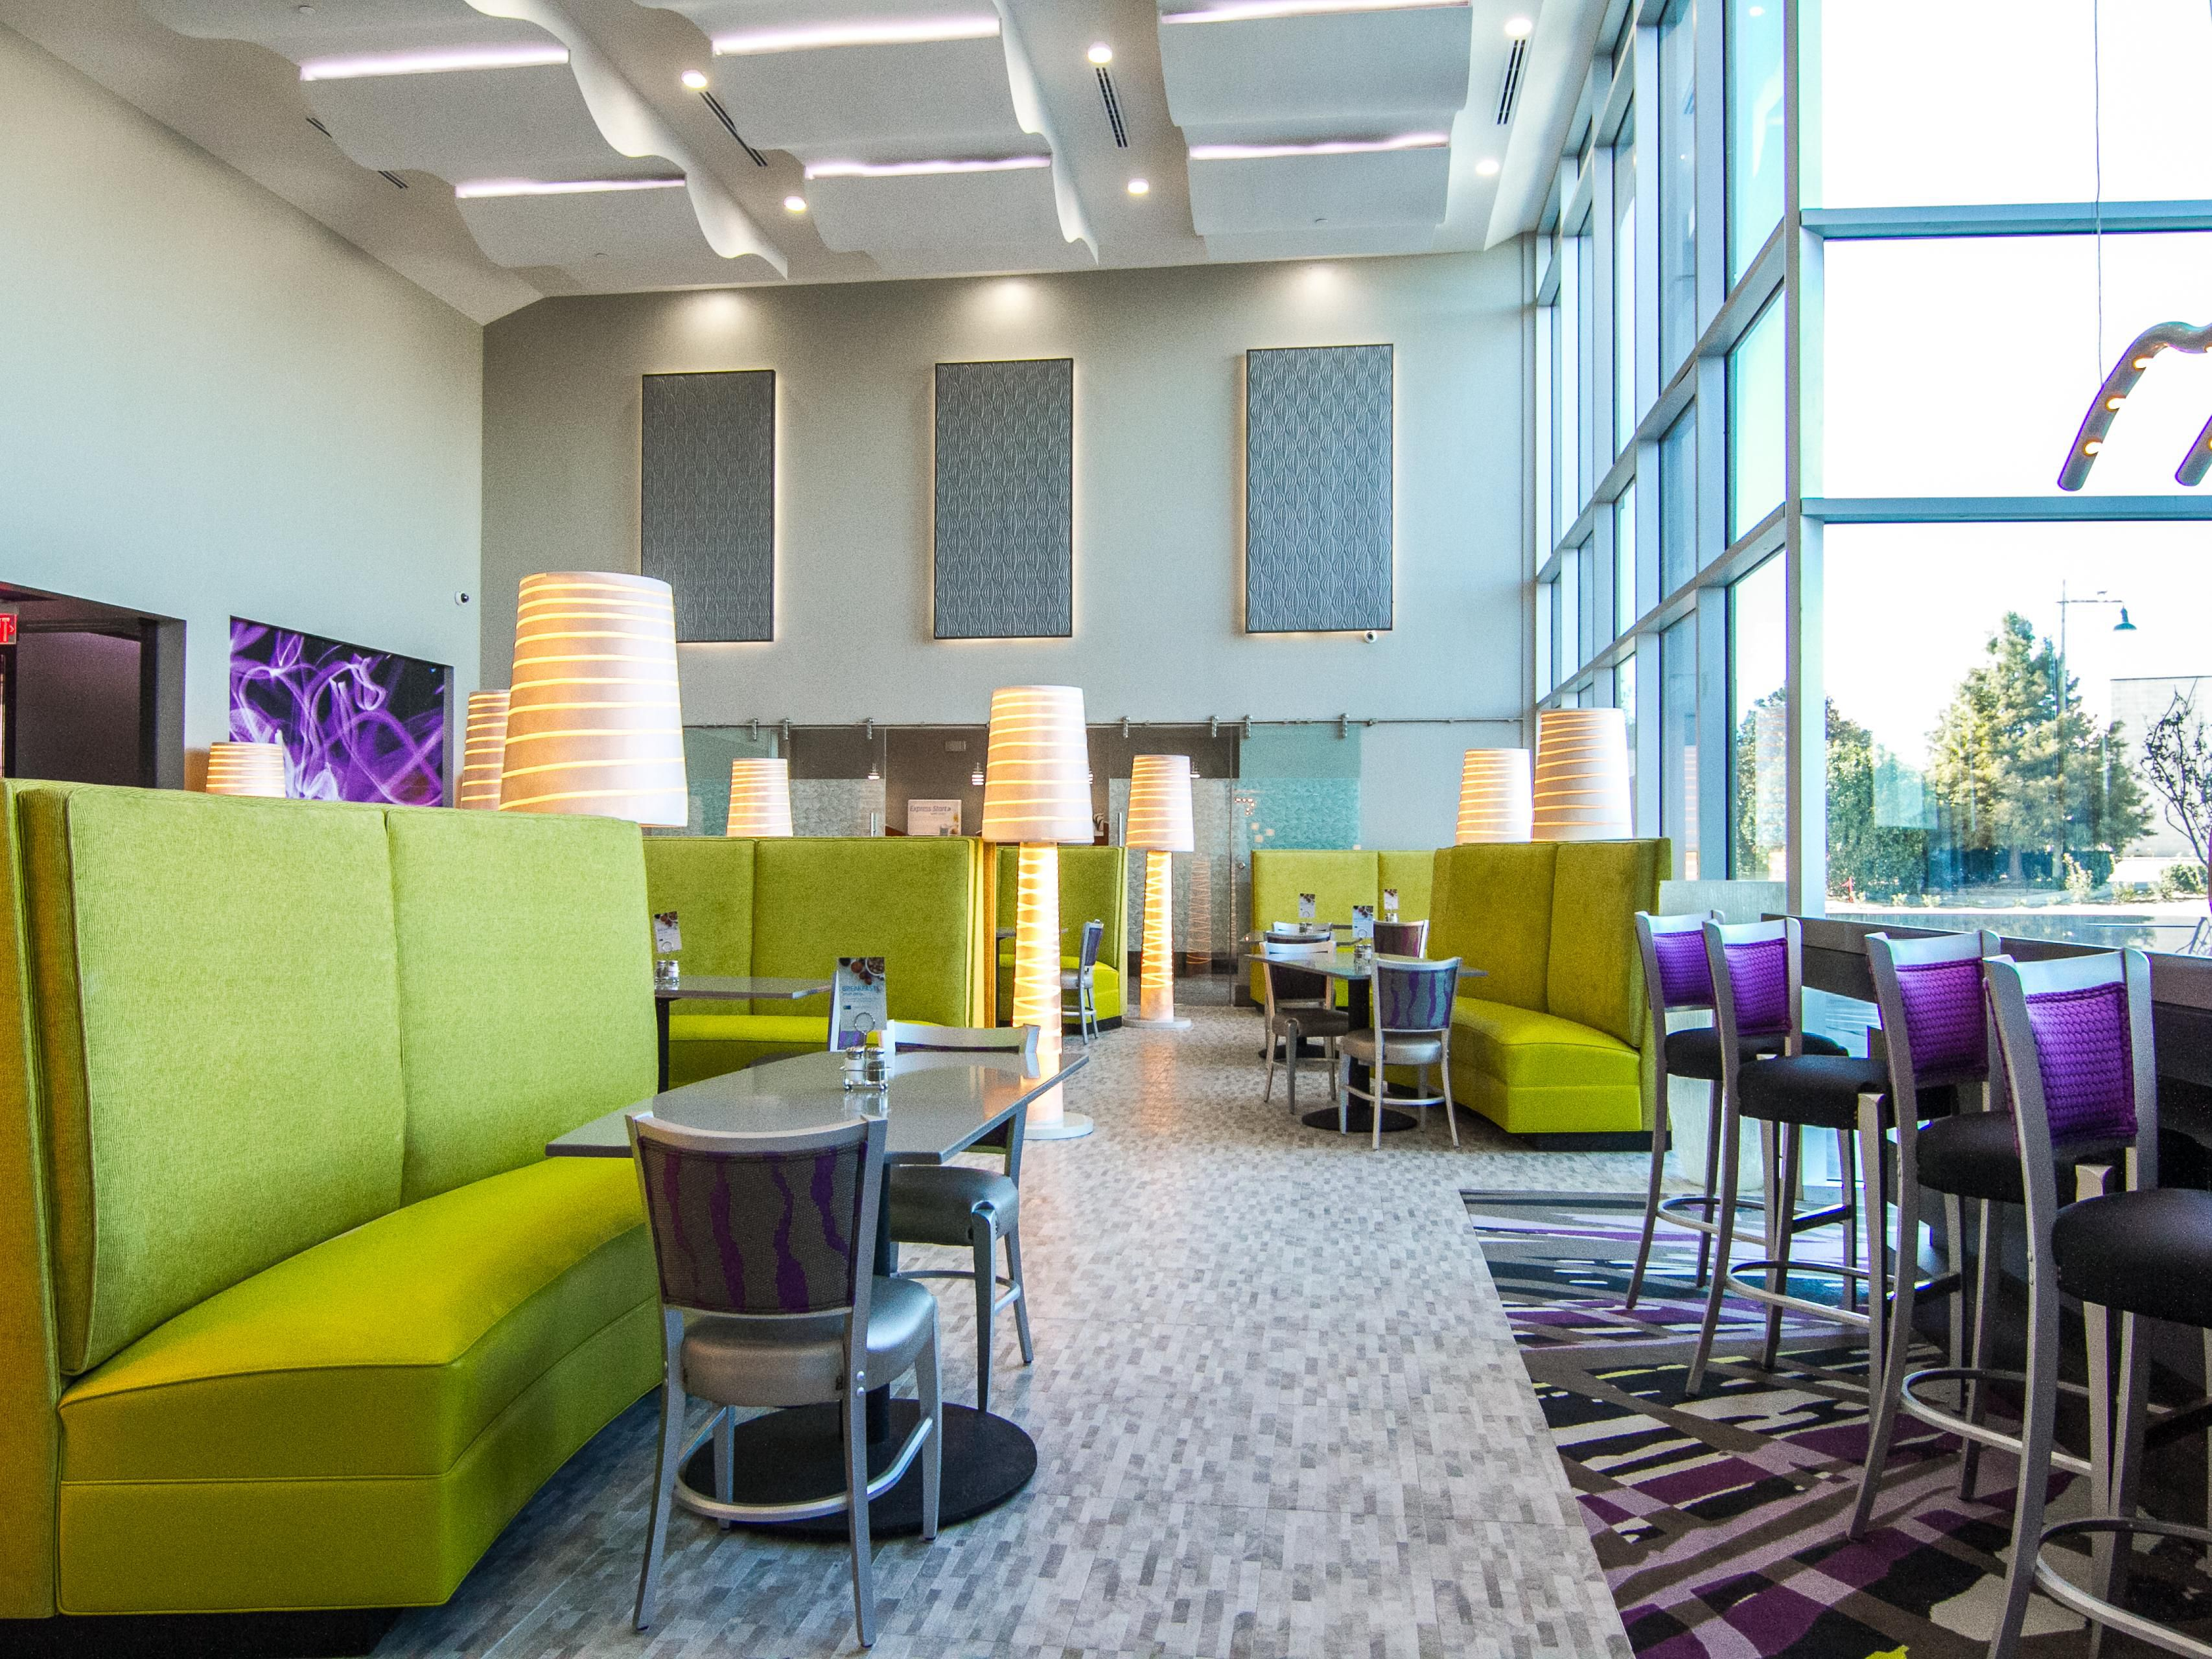 Holiday Inn Express Plano Affordable Hotels by IHG